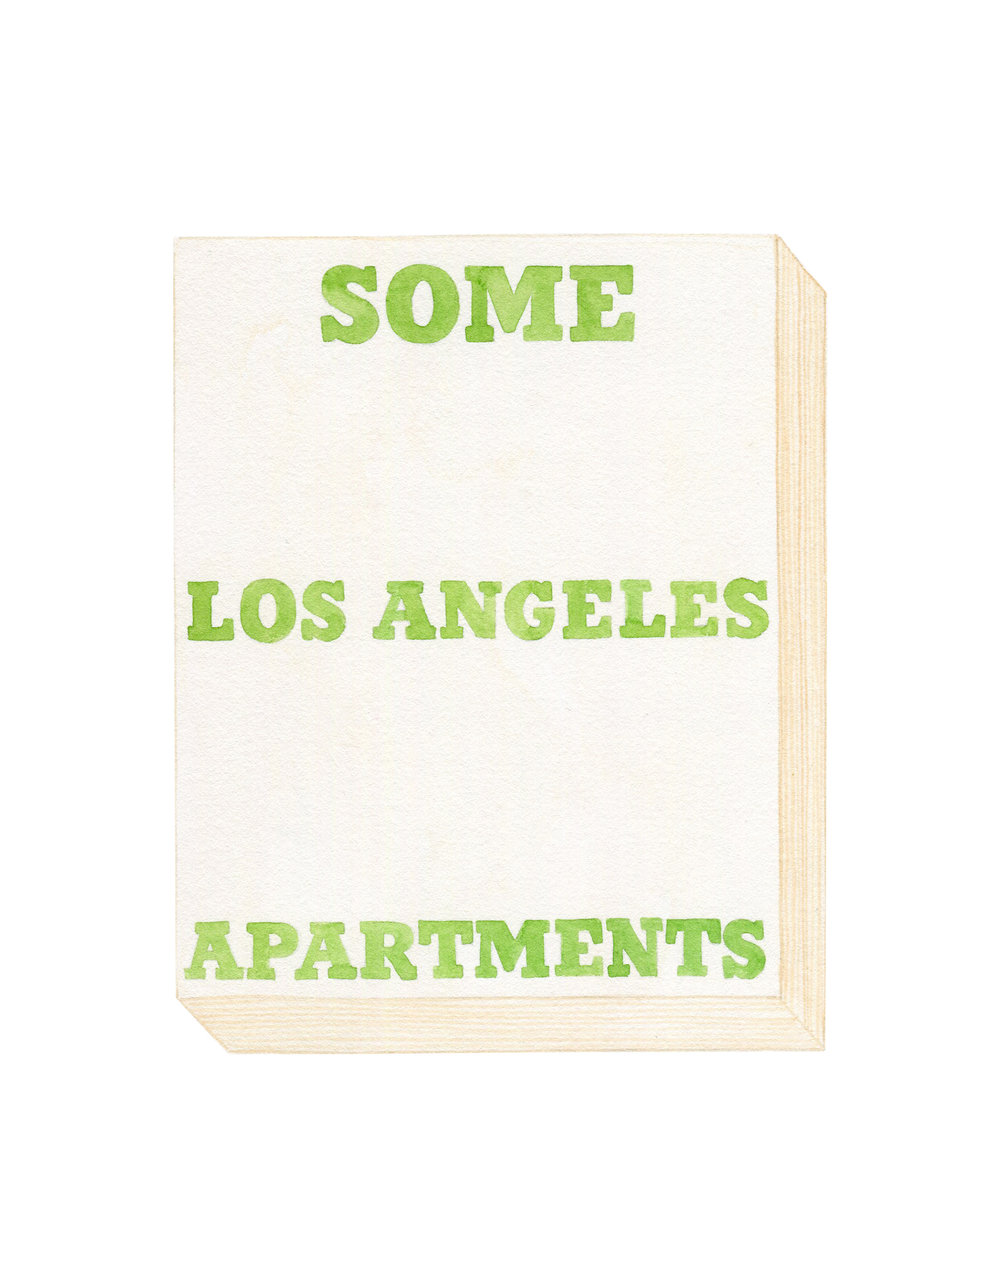 stephenson_vintagebooks_somelosangelesapartments_2.jpg